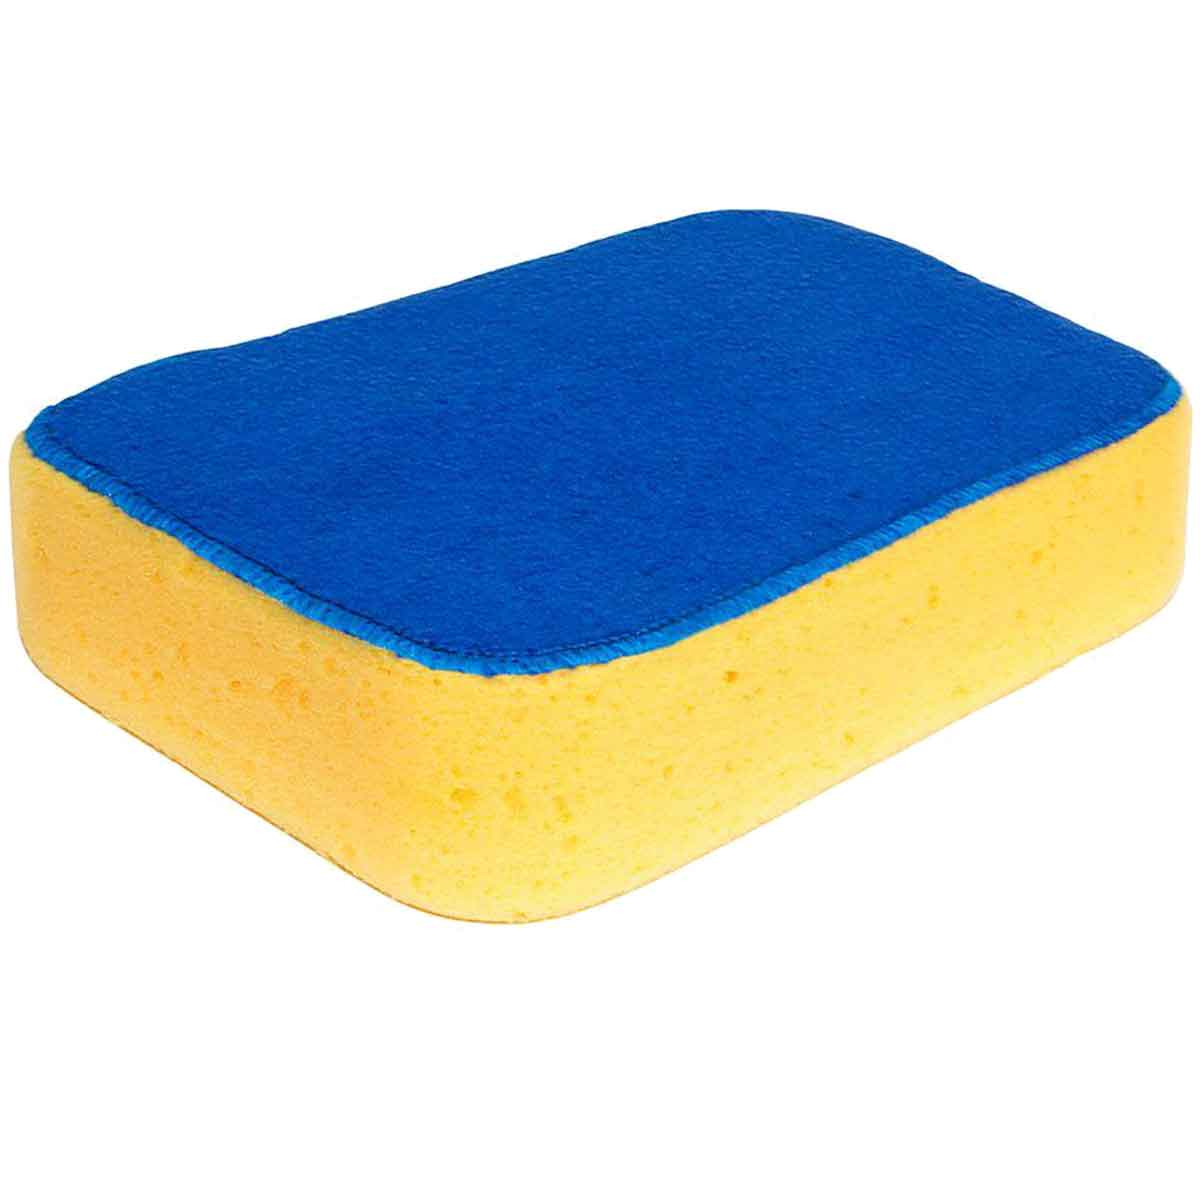 7 1//2 x 5 1//4 Inch 6-Pack Epoxy Grout Sponges